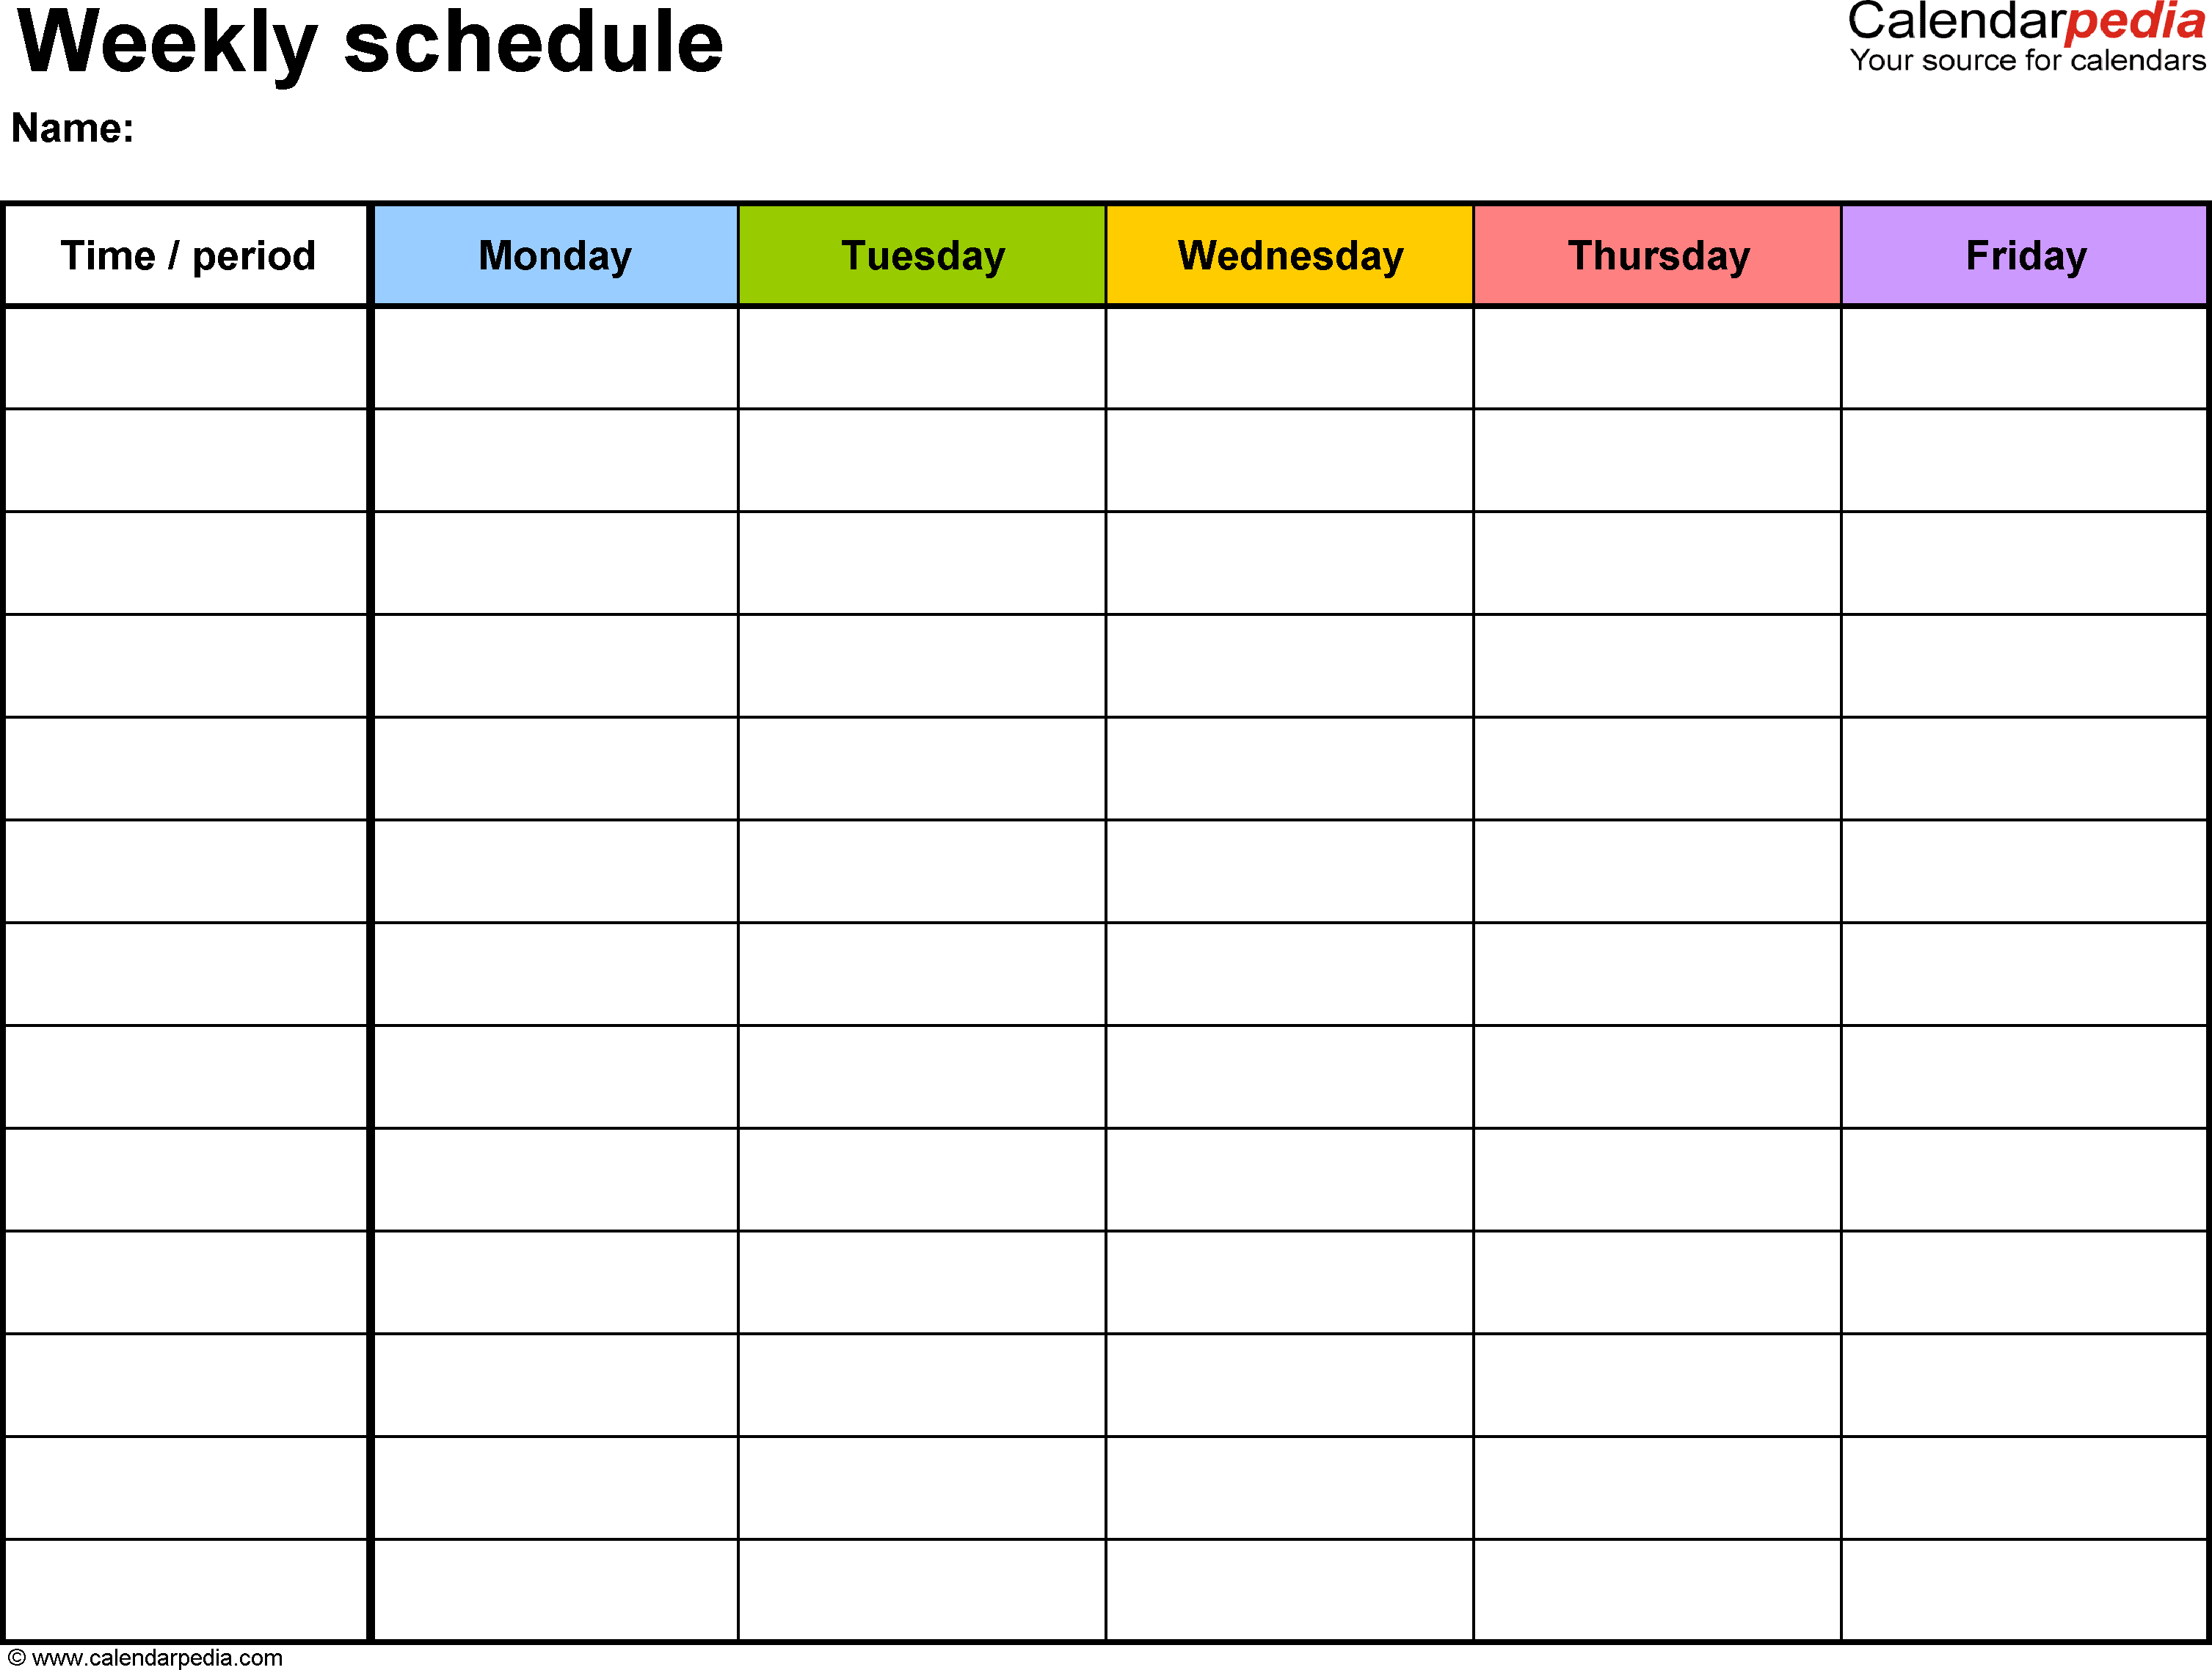 Free Staff Rota Spreadsheet Intended For Free Weekly Schedule Templates For Excel  18 Templates